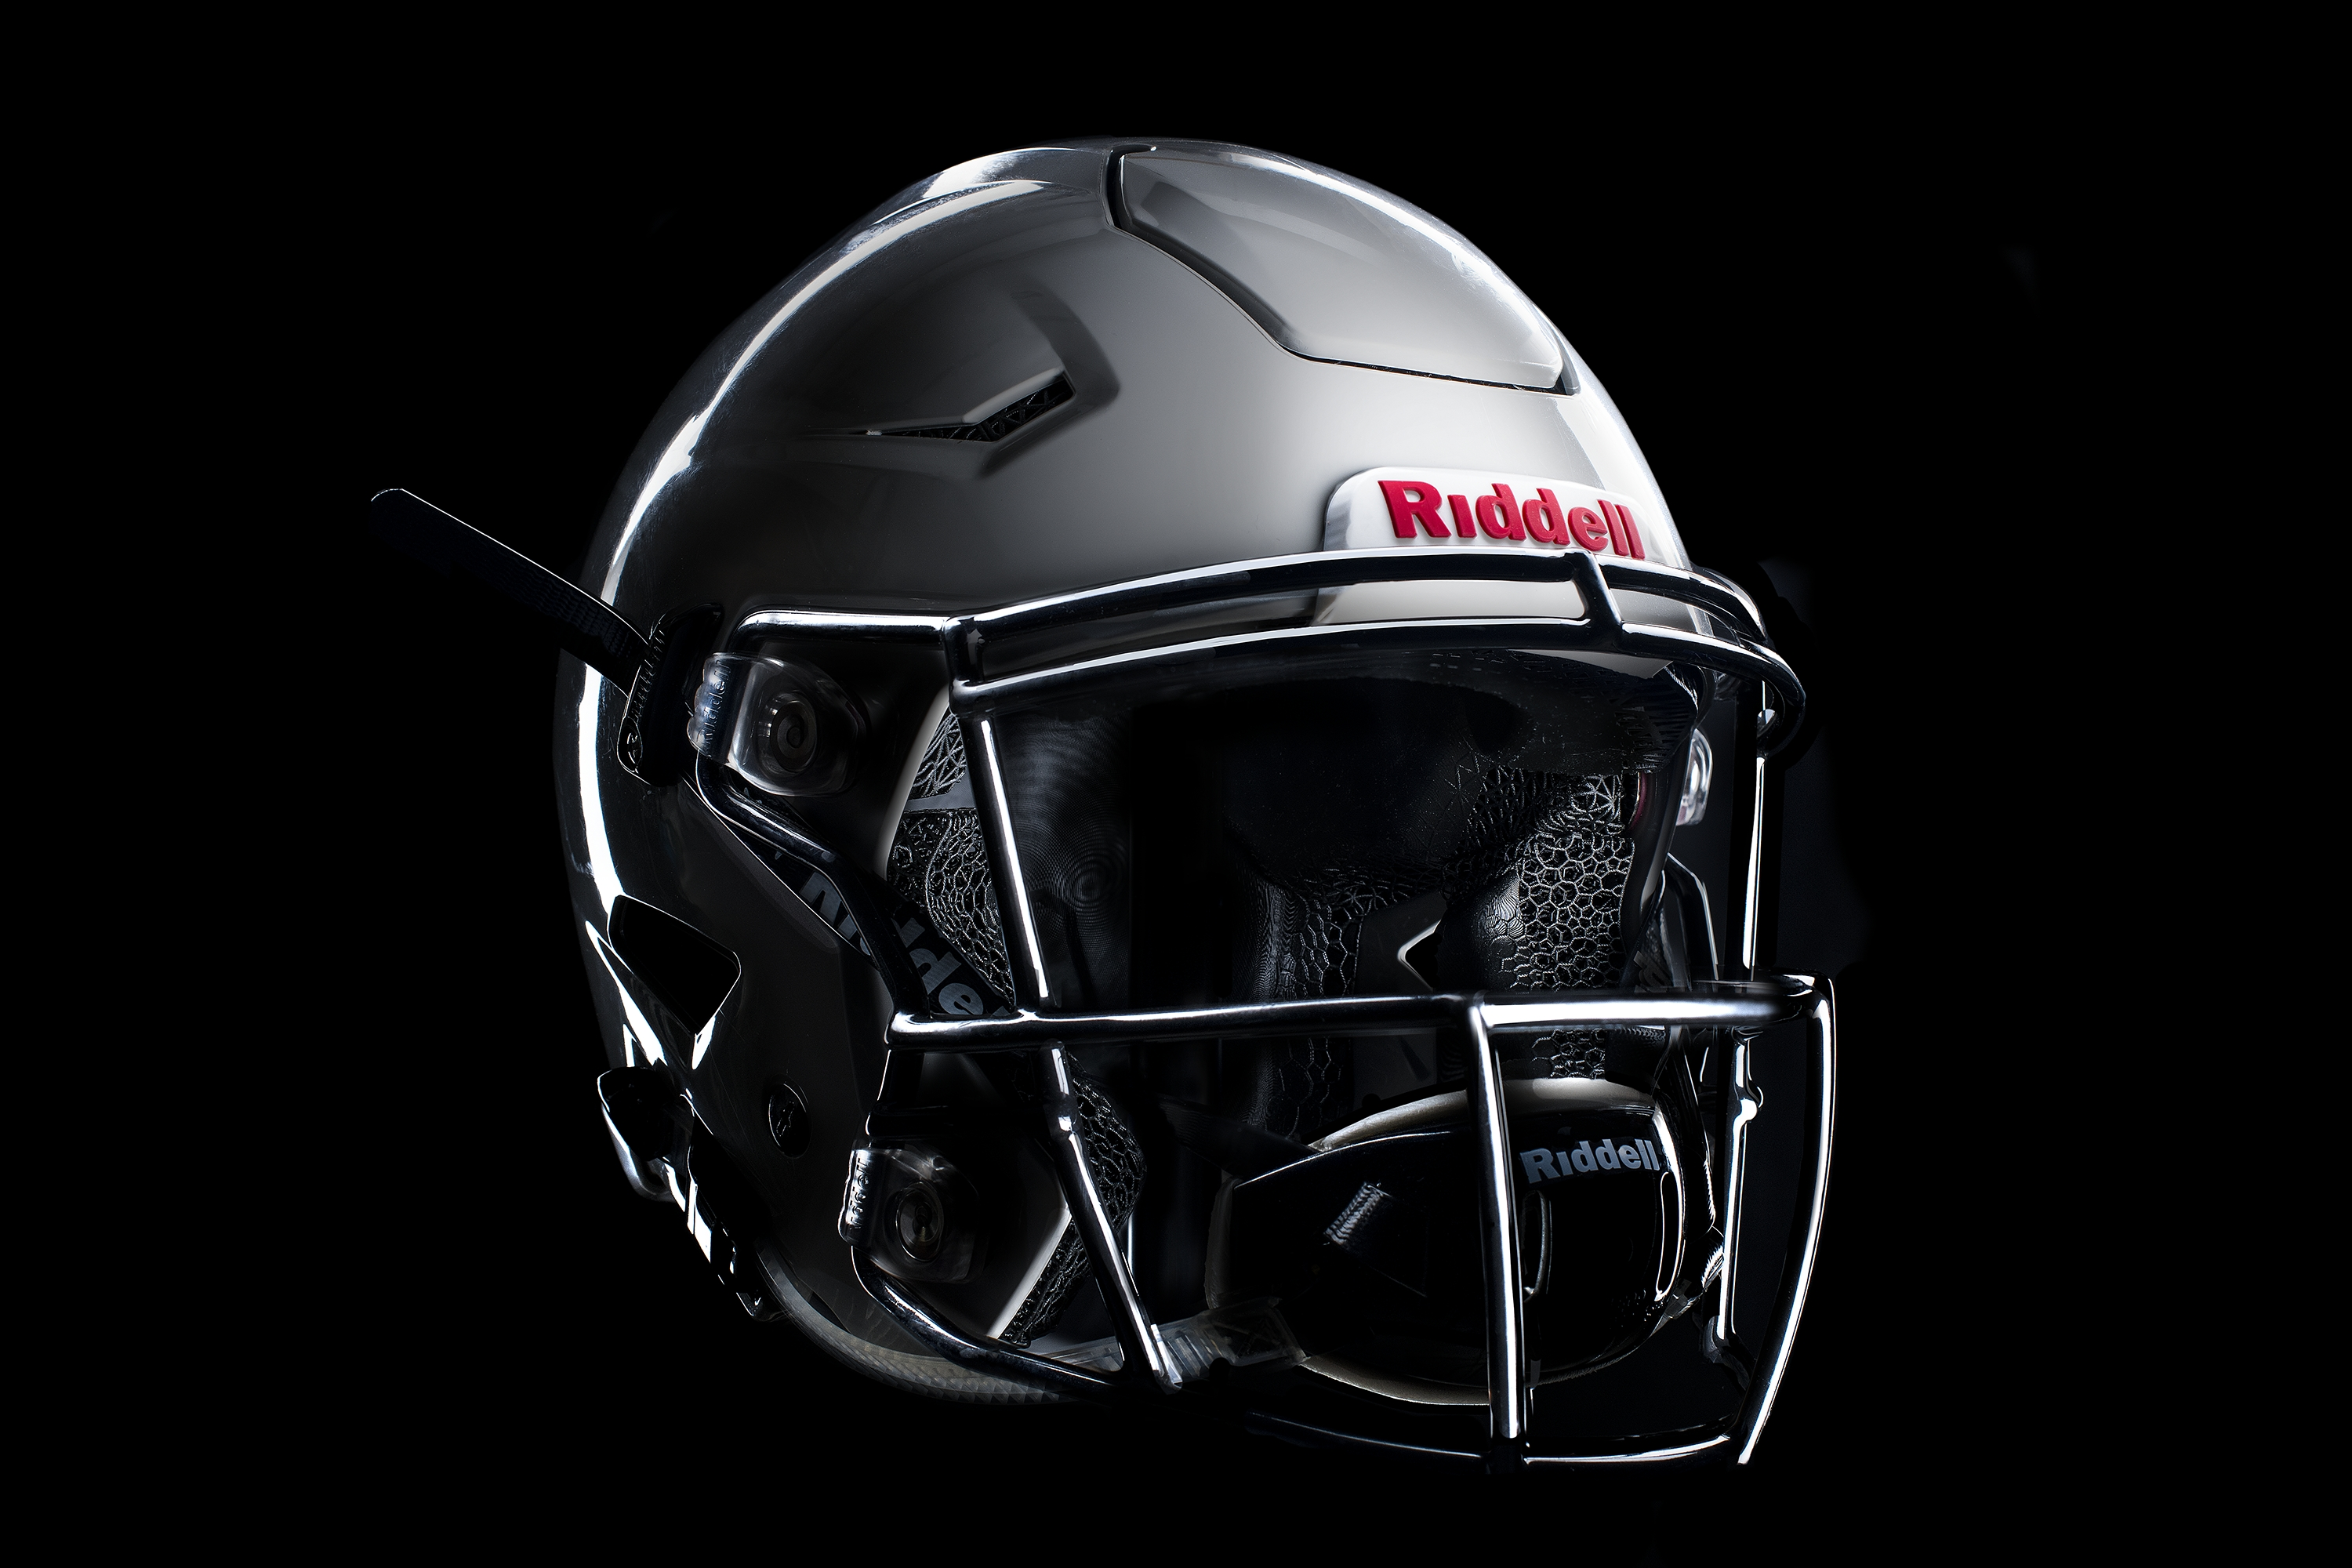 Riddell Partners with Carbon® to Produce First-Ever 3D Printed Football  Helmet Liner | Business Wire